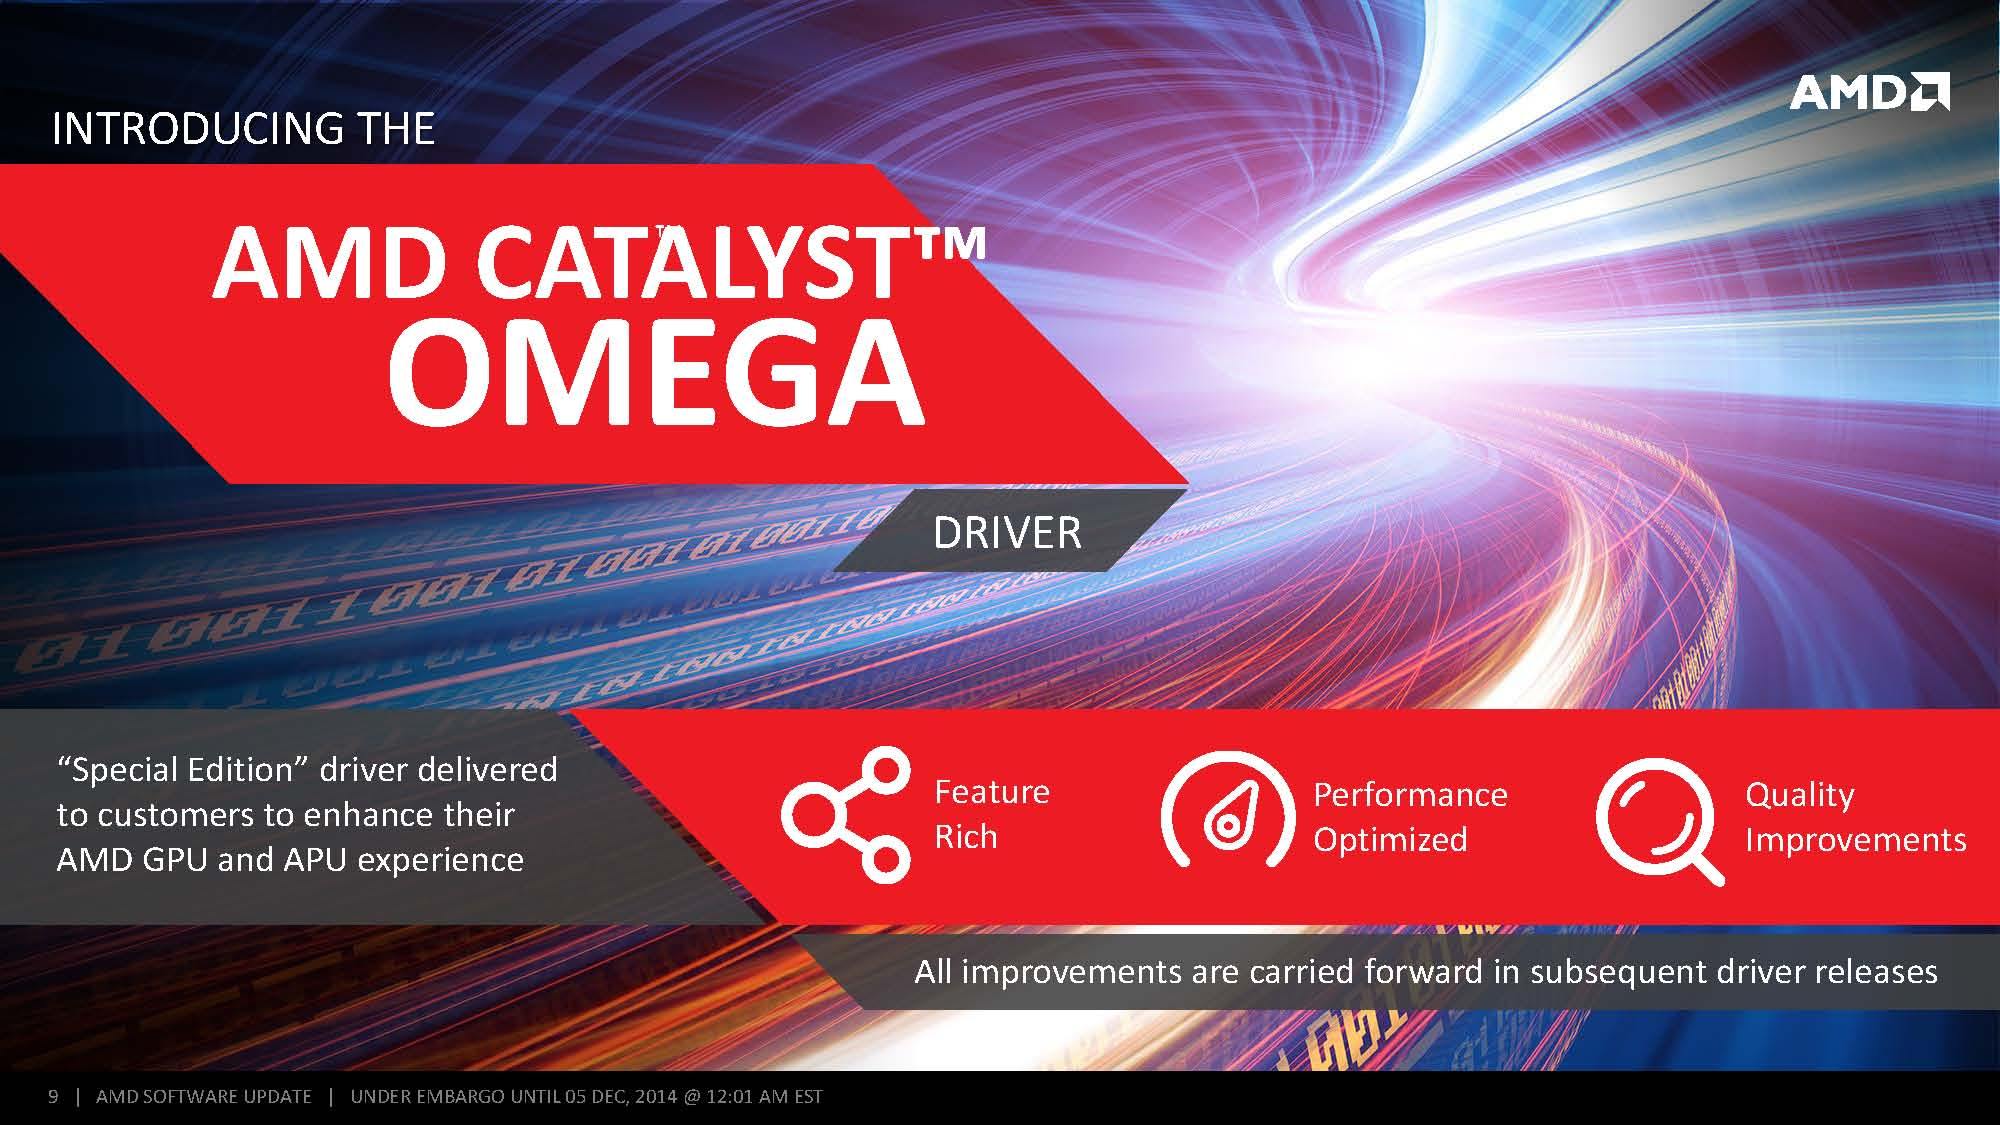 Test Driving the AMD Catalyst Omega Driver 4